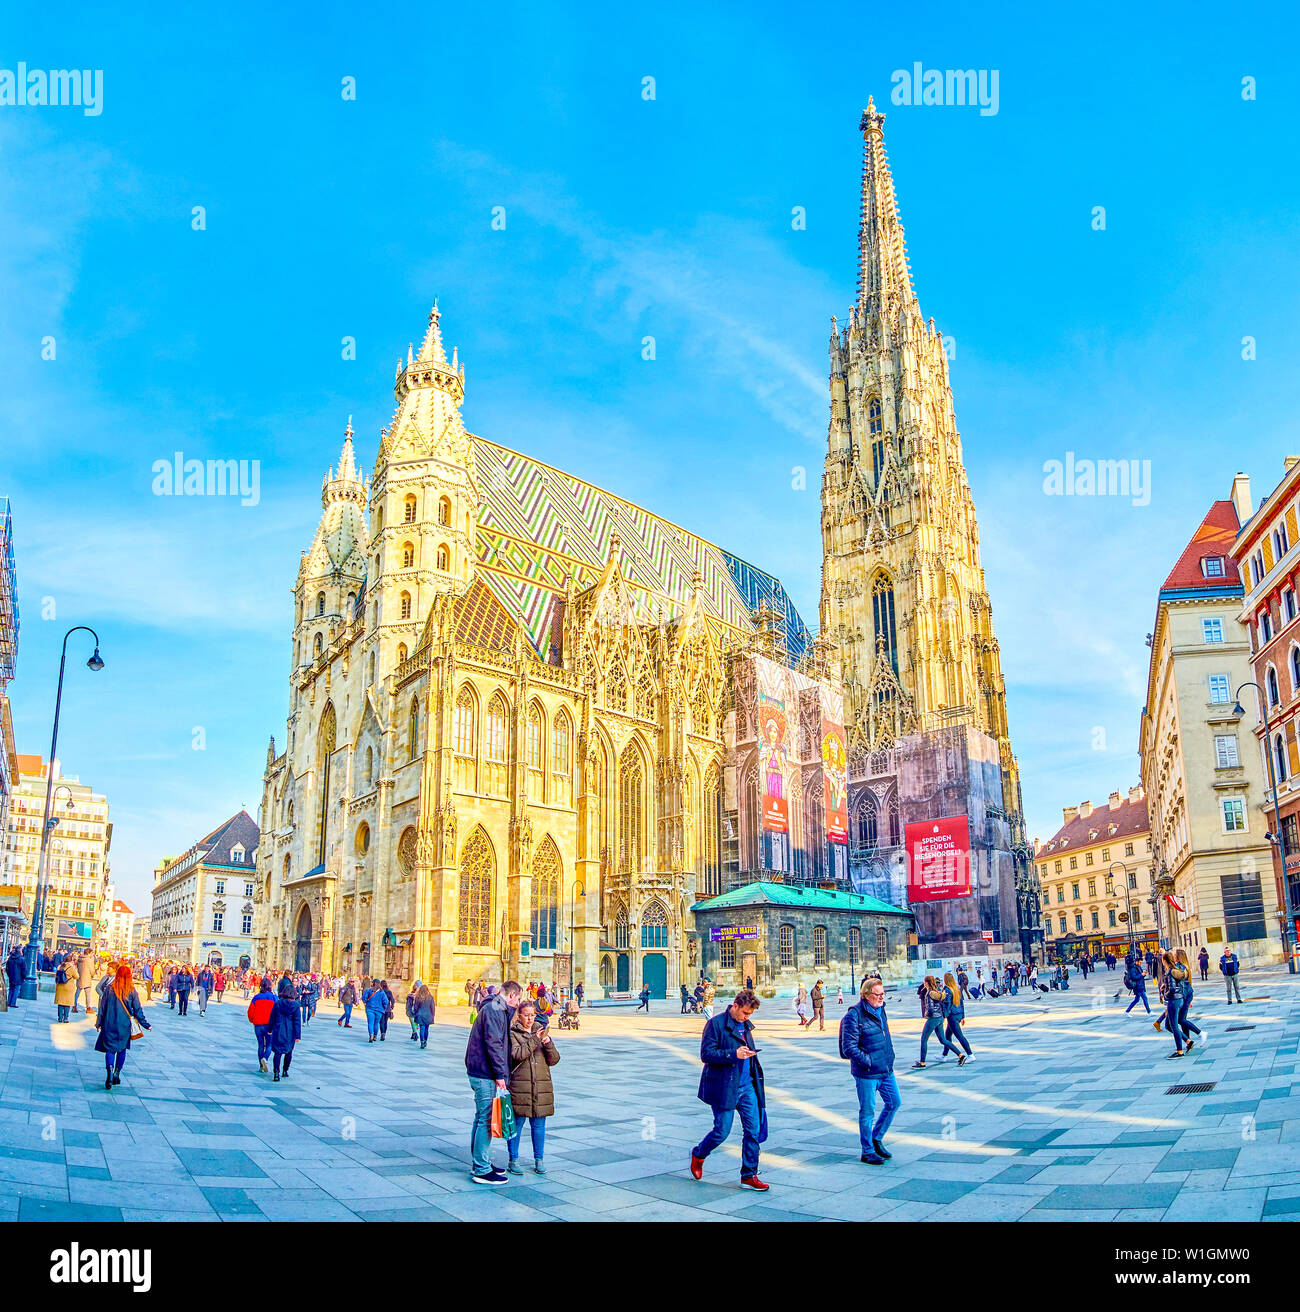 VIENNA, AUSTRIA - FEBRUARY 18, 2019: The outstanding St.Stephen Cathedral with high bell tower is a symbol of the city, on February 18 in Vienna. Stock Photo